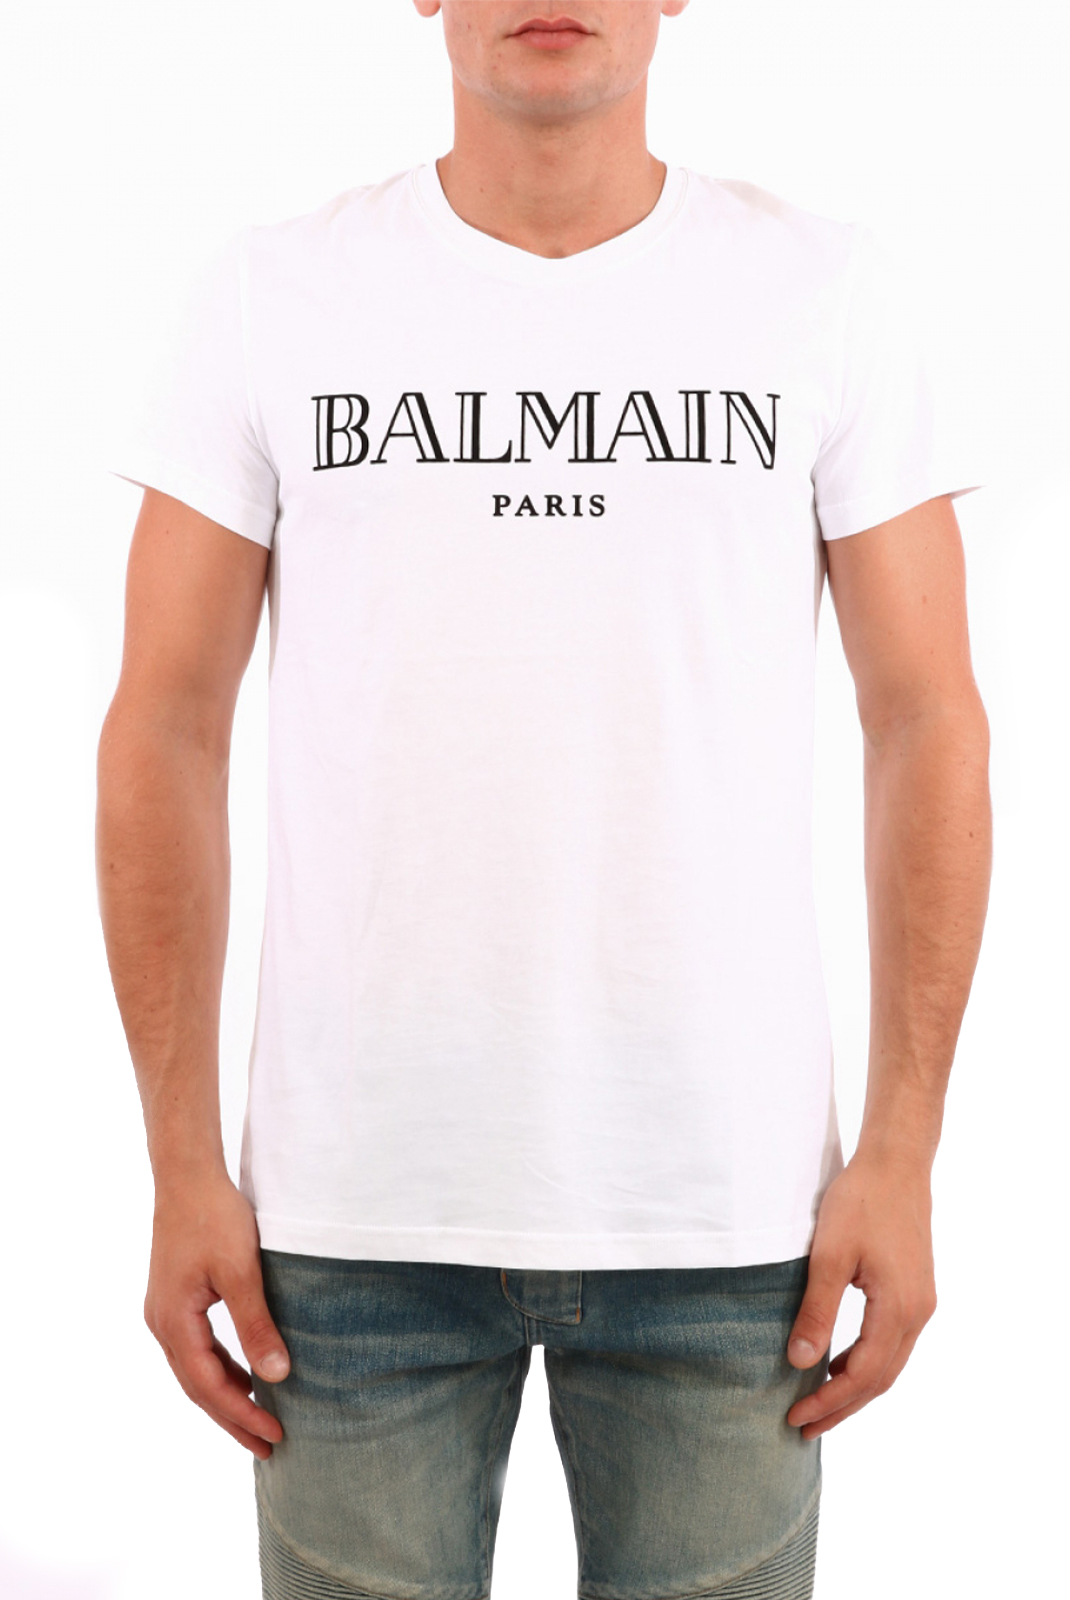 Tee-shirts  Balmain W8H8601 WHITE/BLACK